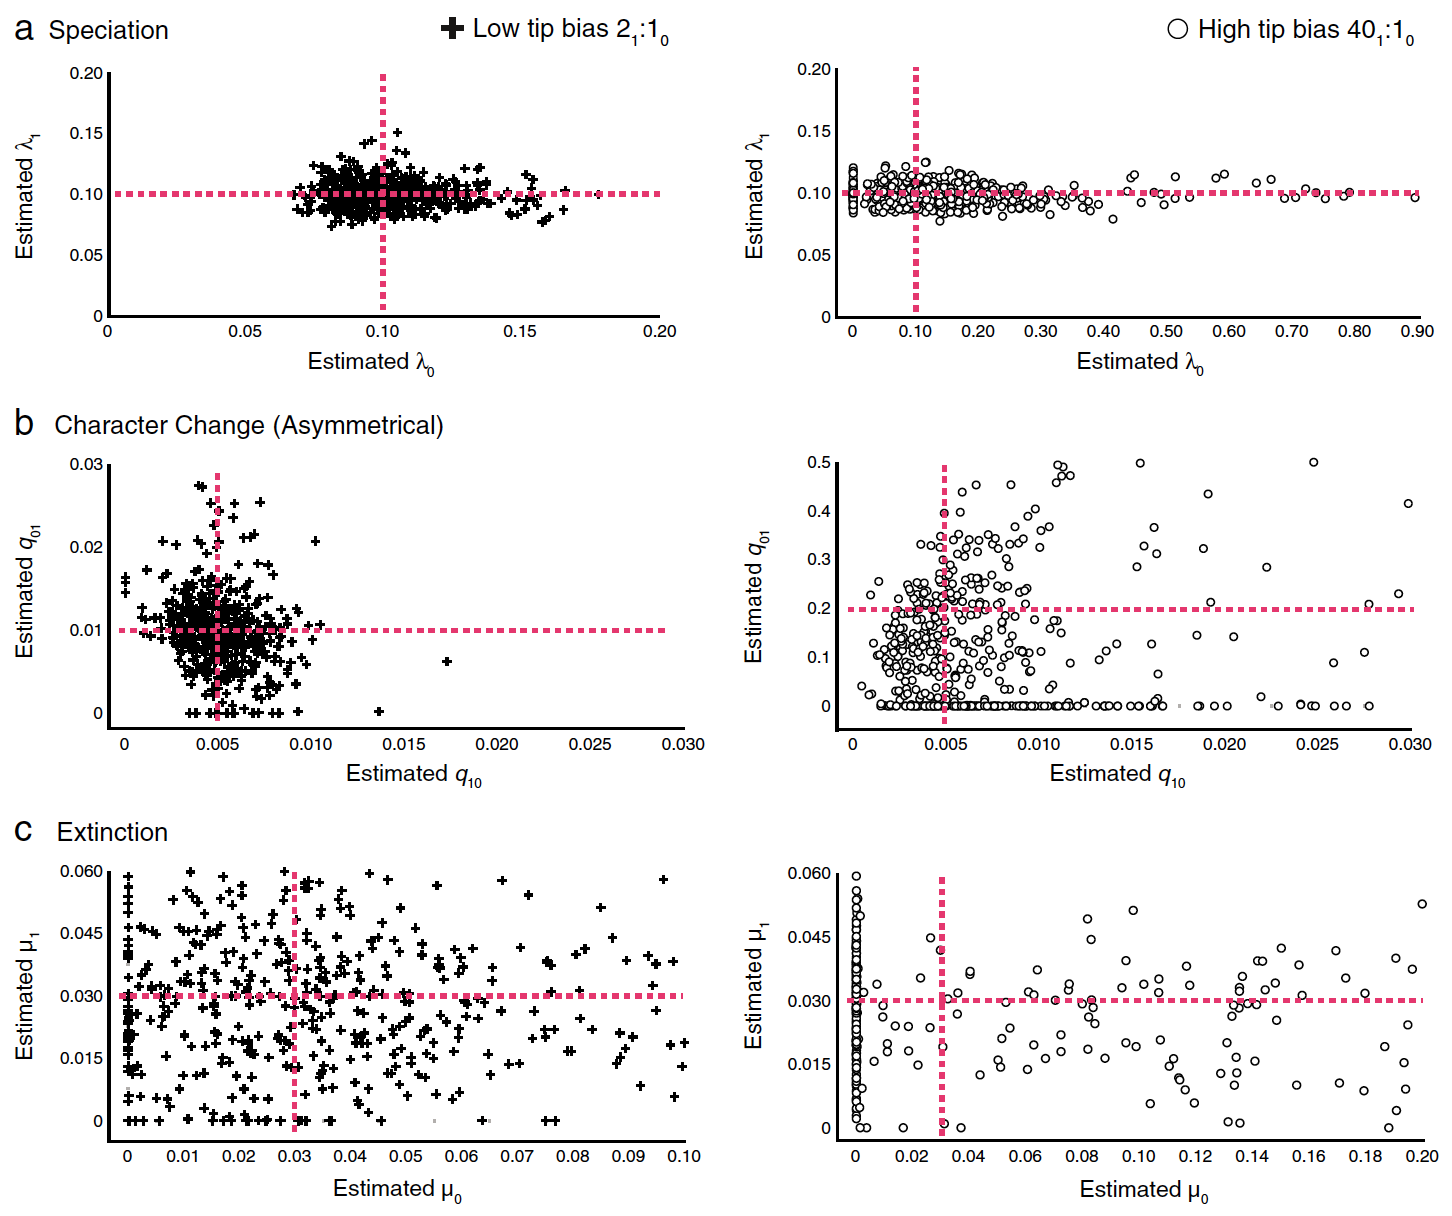 Power and Parameter Estimation of the BiSSE Method - 14. Davis, M.P., Midford, P.E., and Maddison, W. (2013). Exploring power and parameter estimation of the BiSSE method for analyzing species diversification. BMC Evolutionary Biology. 13:38 DOI: 10.1186/1471-2148-13-38. Highly Accessed.Google ScholarOPEN ACCESS